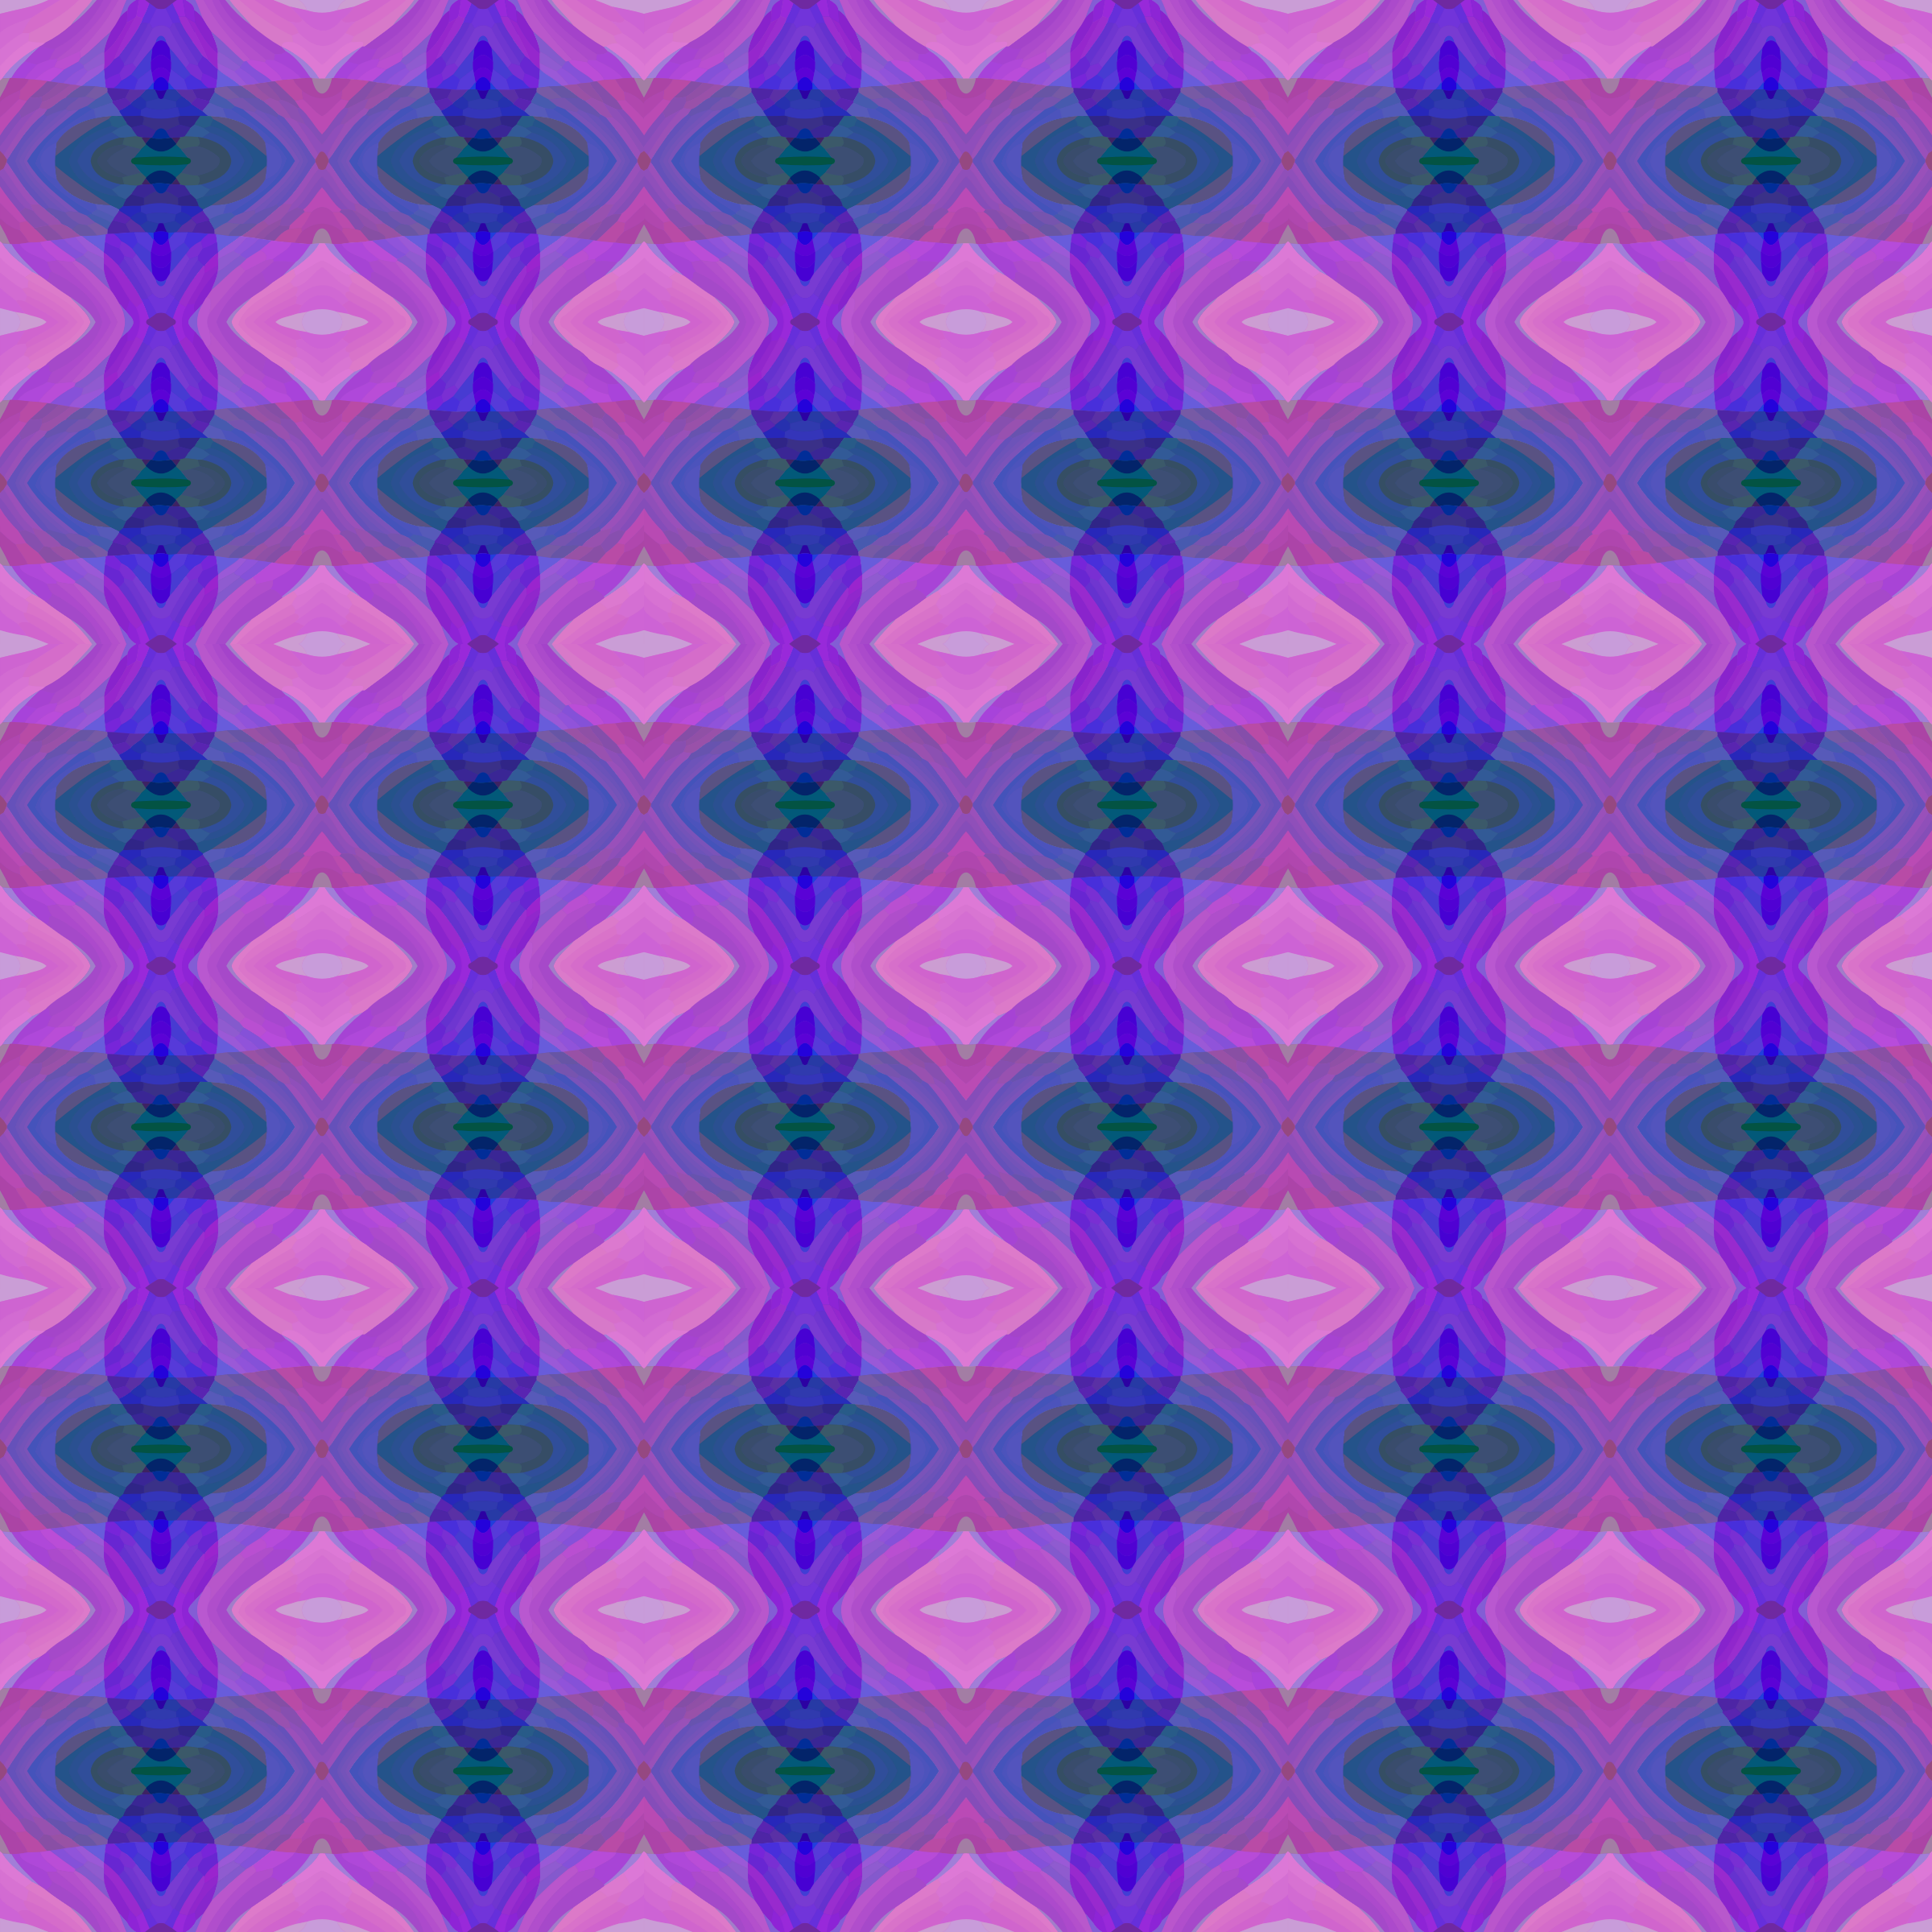 Background pattern 225 by Firkin